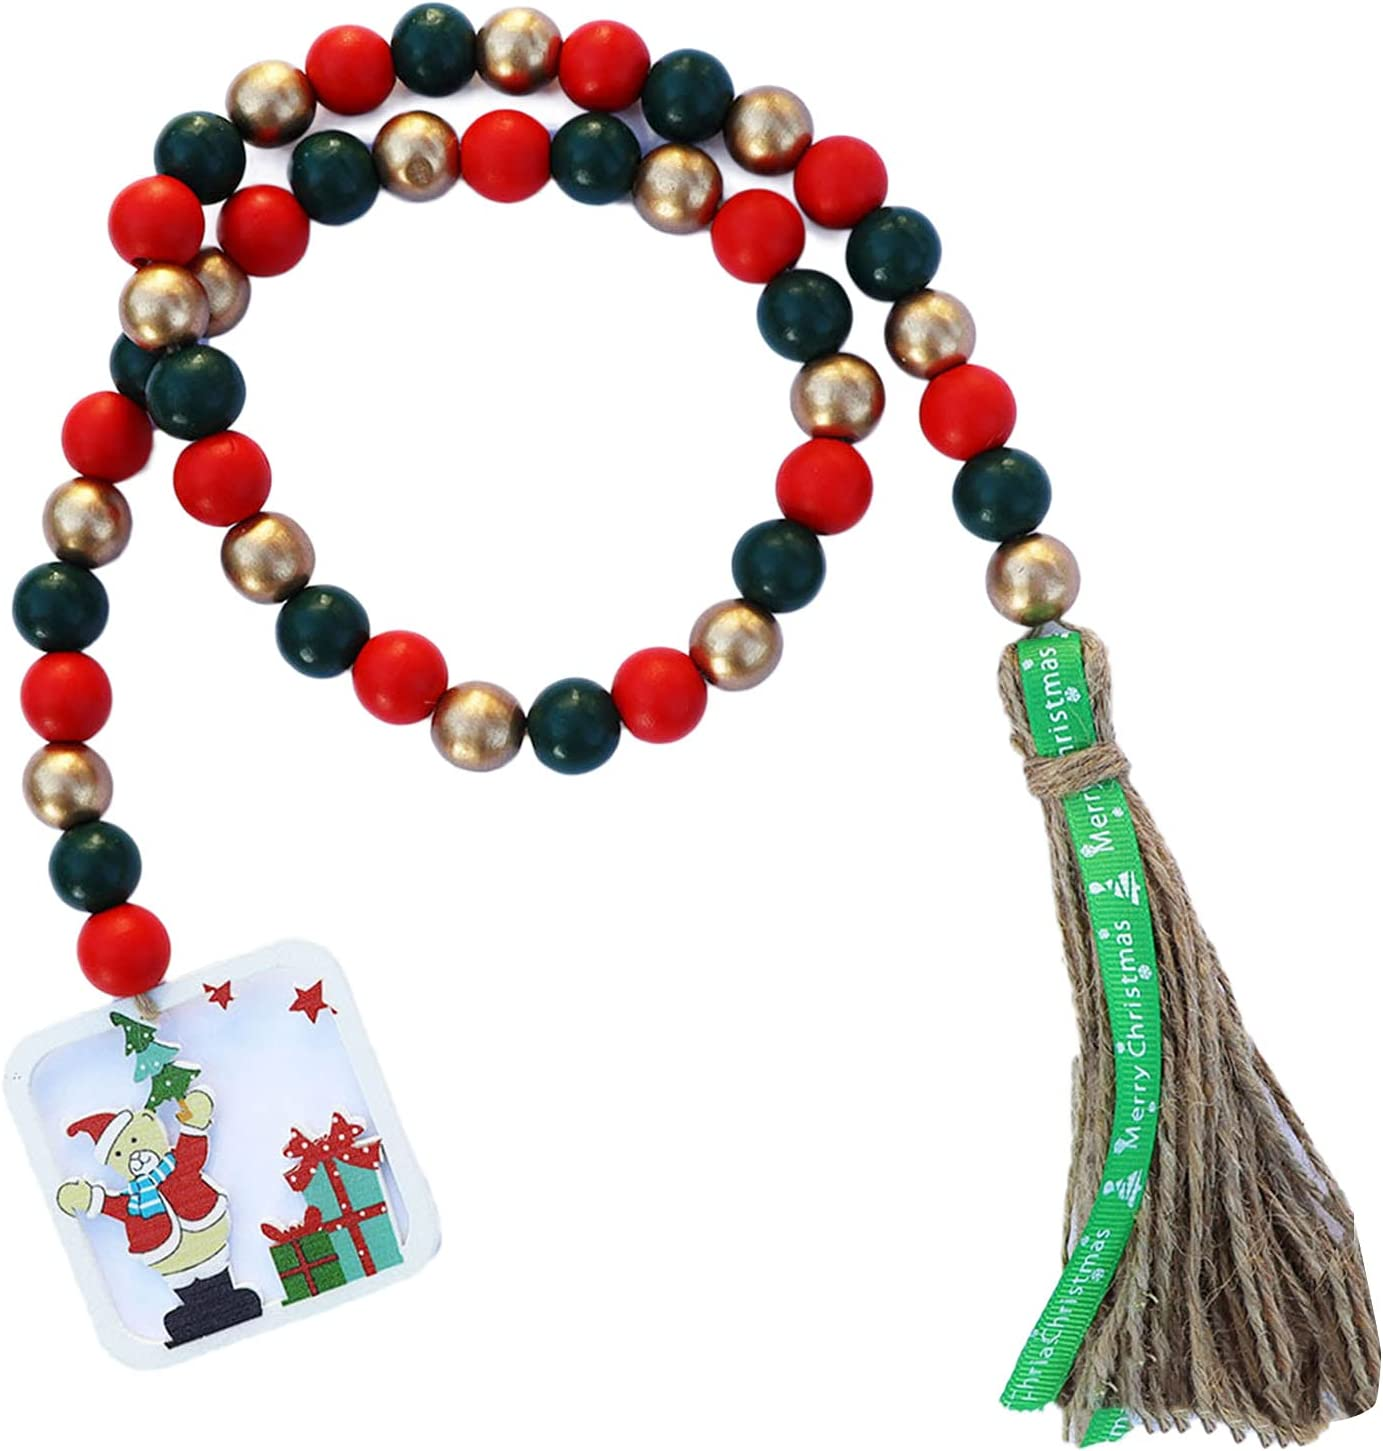 Eurobuy Christmas Wooden Bead Tree Max 40% OFF Tassels Max 63% OFF Wreath with